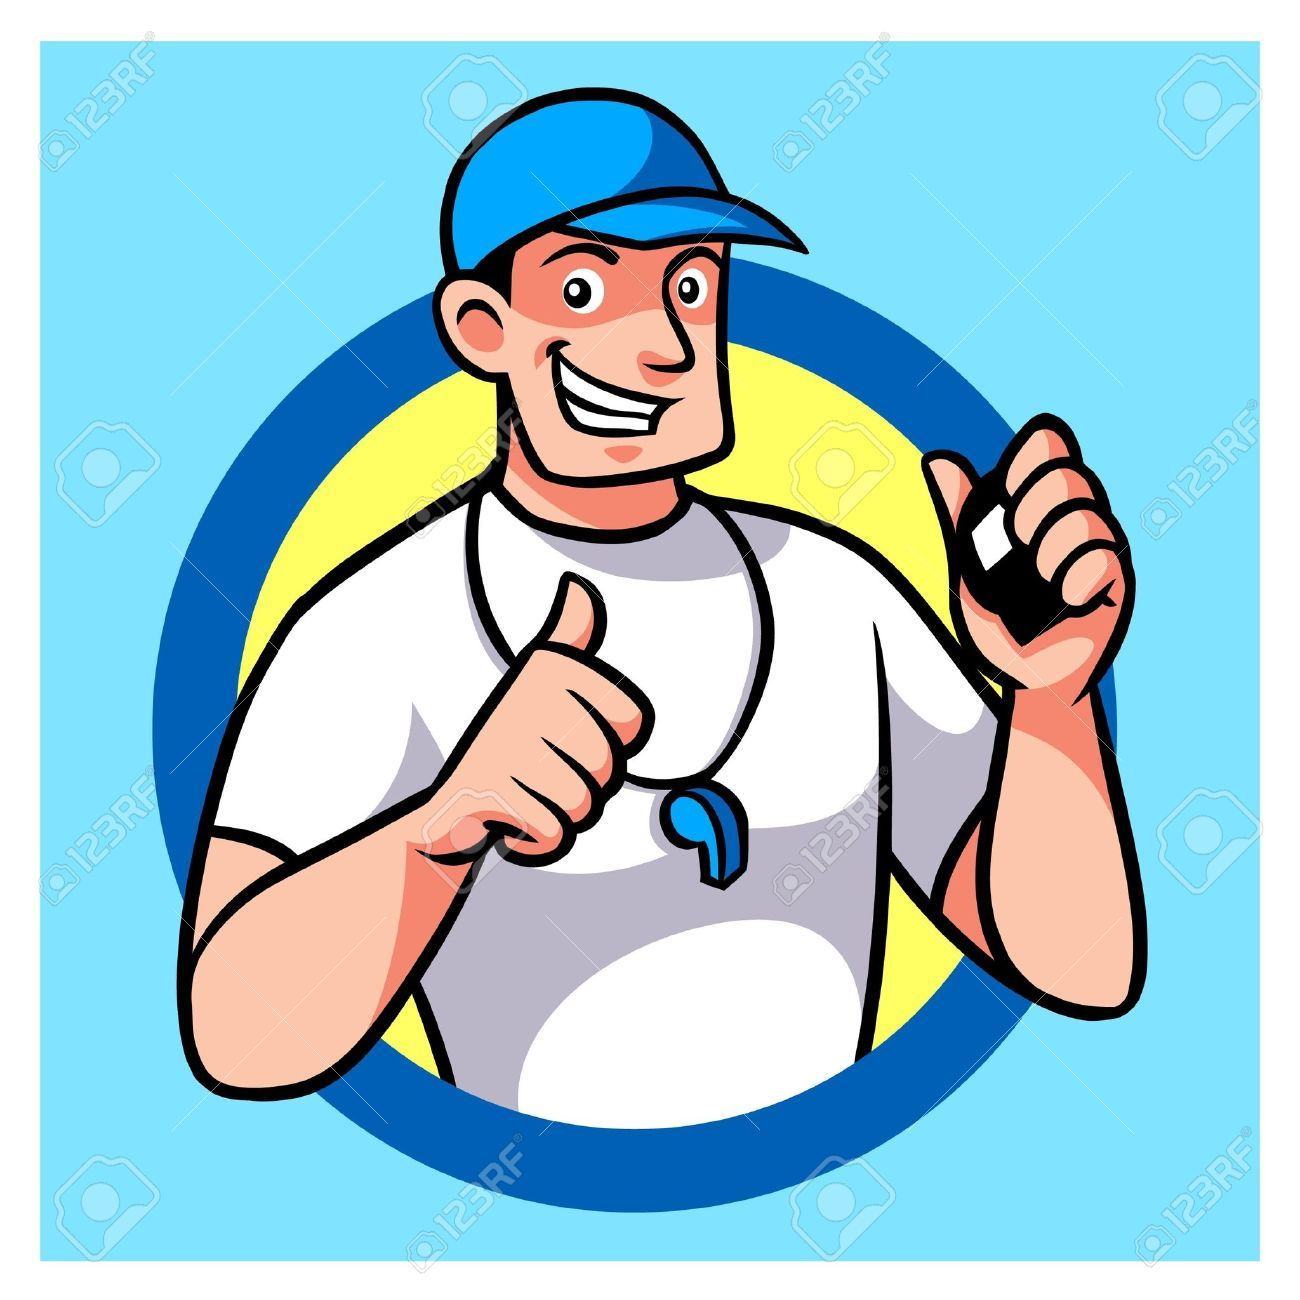 sports coach symbol Google Search Physical education